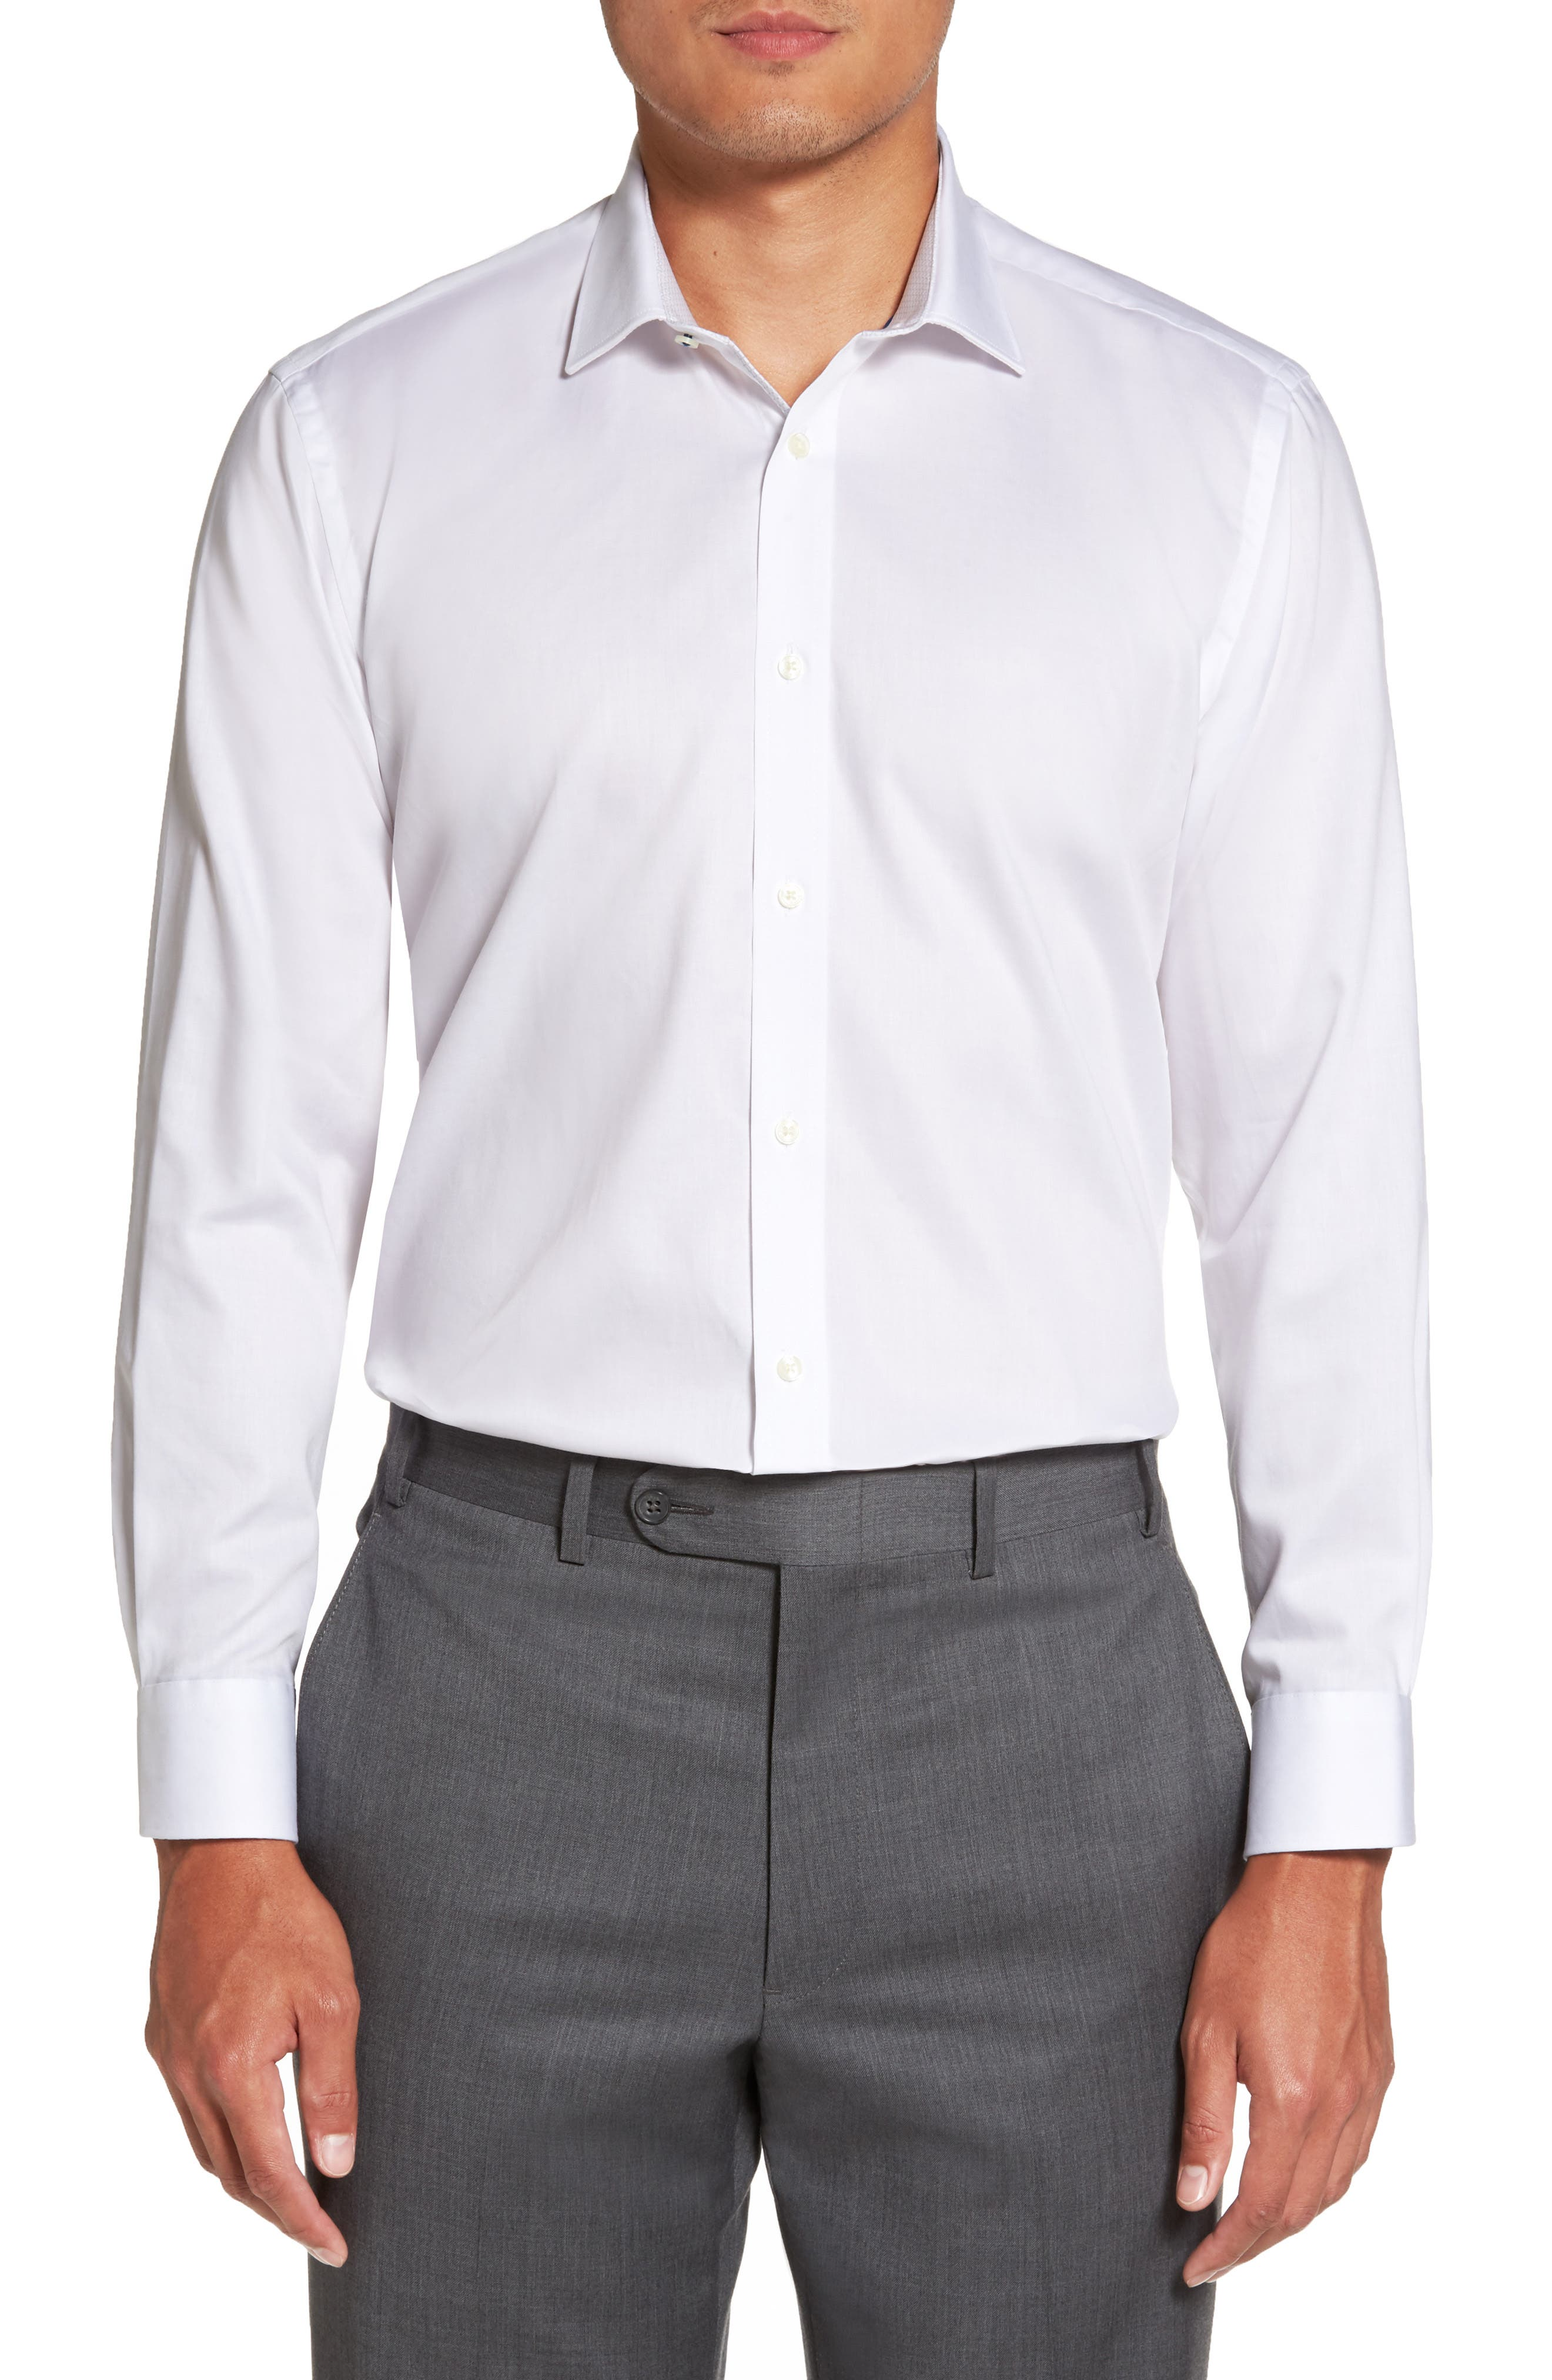 Main Image - Ted Baker London Caramor Trim Fit Solid Dress Shirt